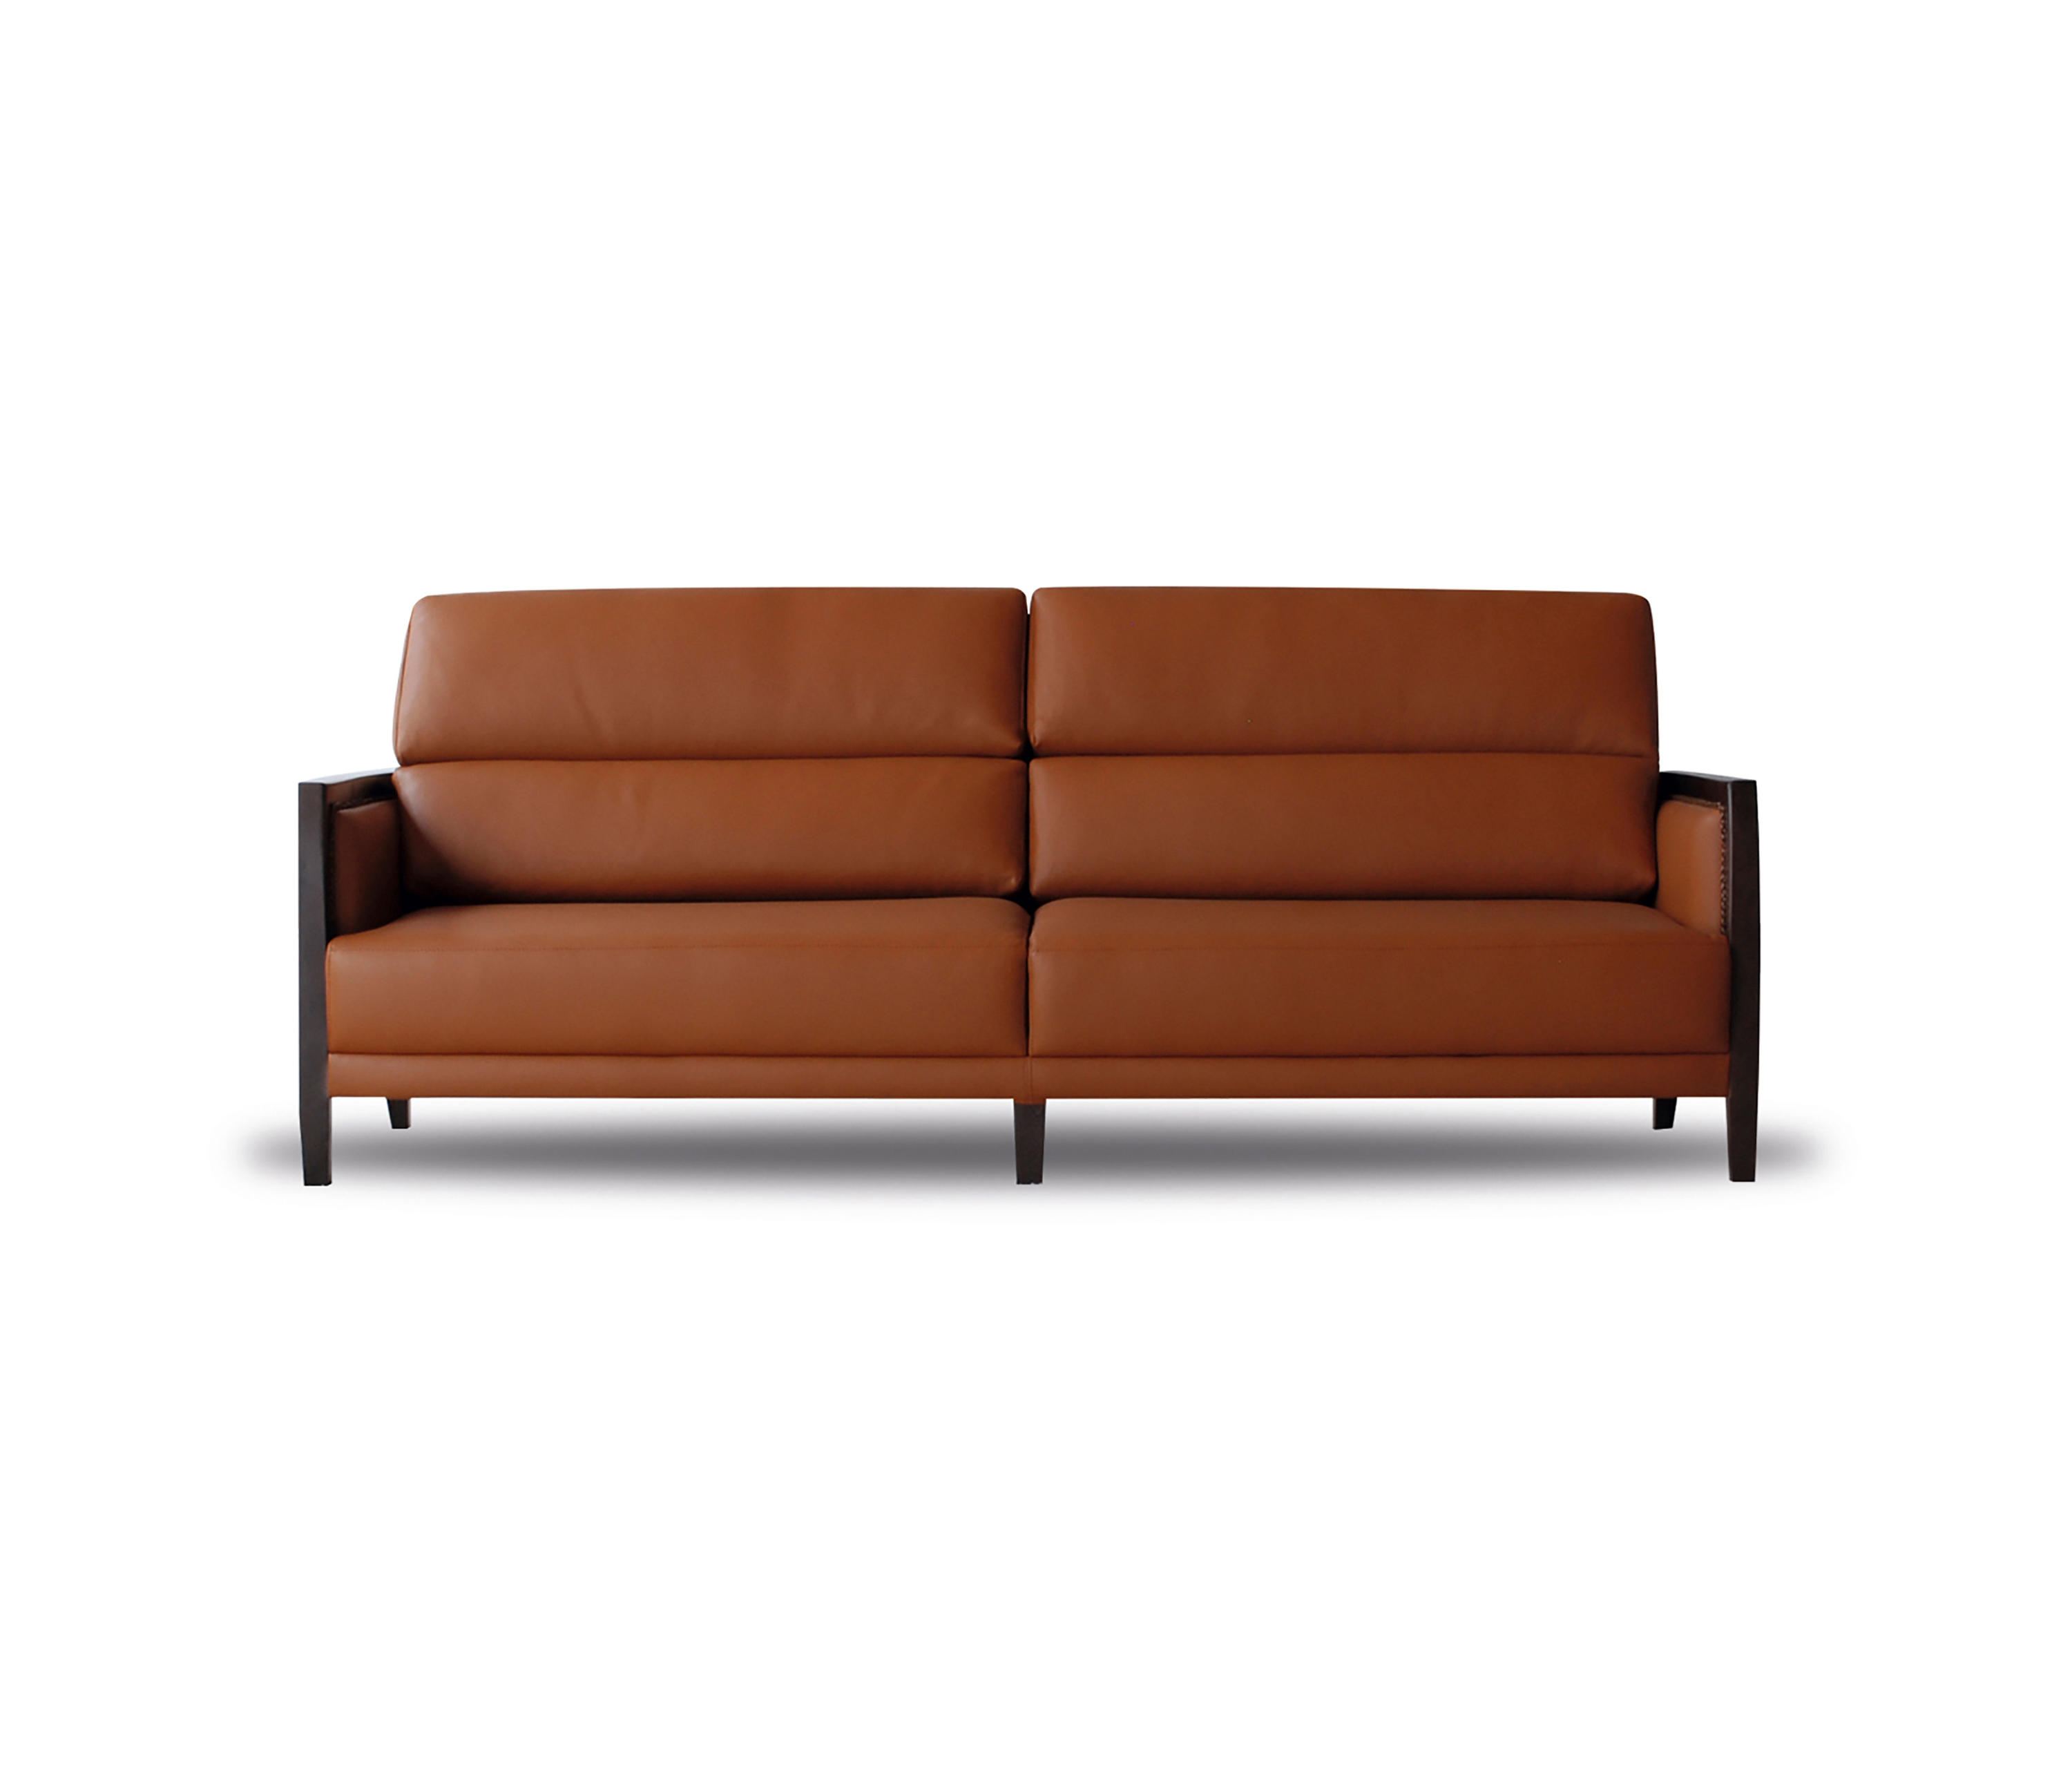 1729 Sofa Sofas From Tecni Nova Architonic # Muebles Para Night Club